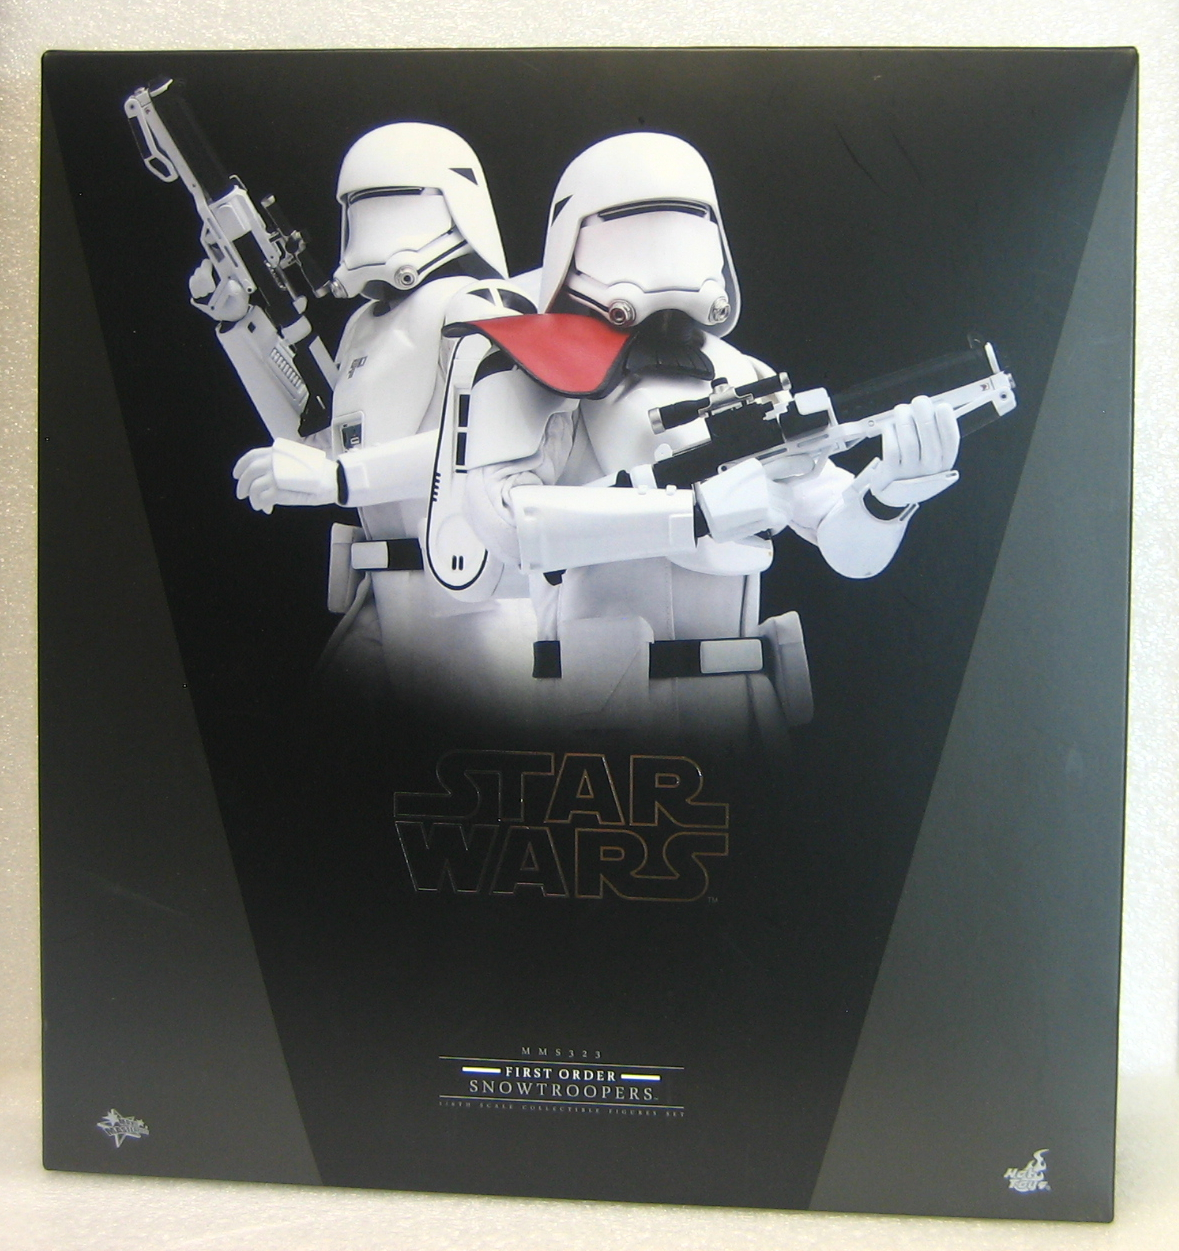 Hot Toys Star Wars First Order Snowtroopers 1:6 Scale Figure Set